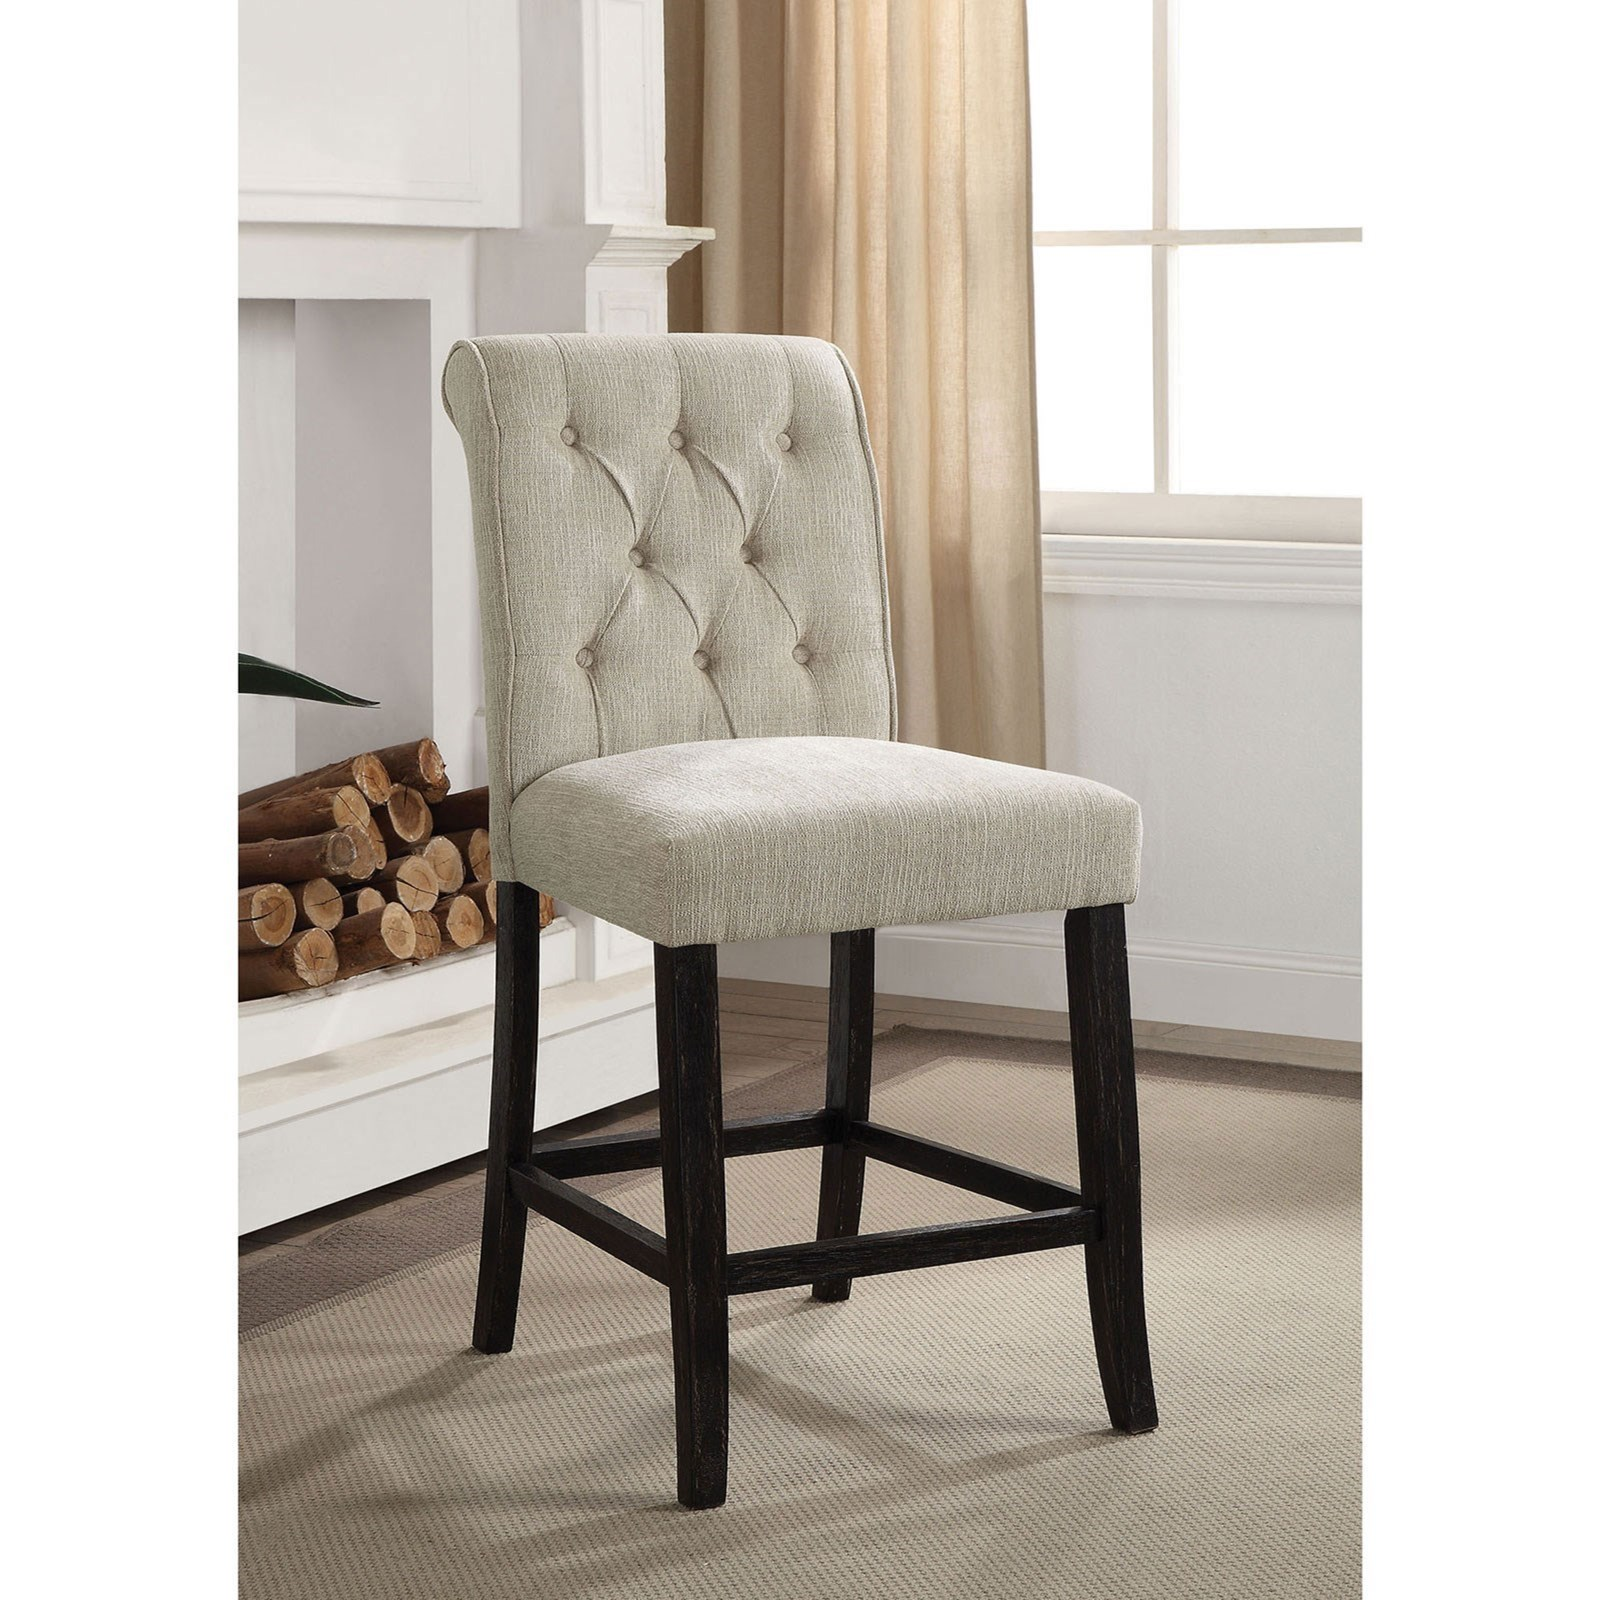 Izzy Counter Height Side Chair 2-Pack at Household Furniture